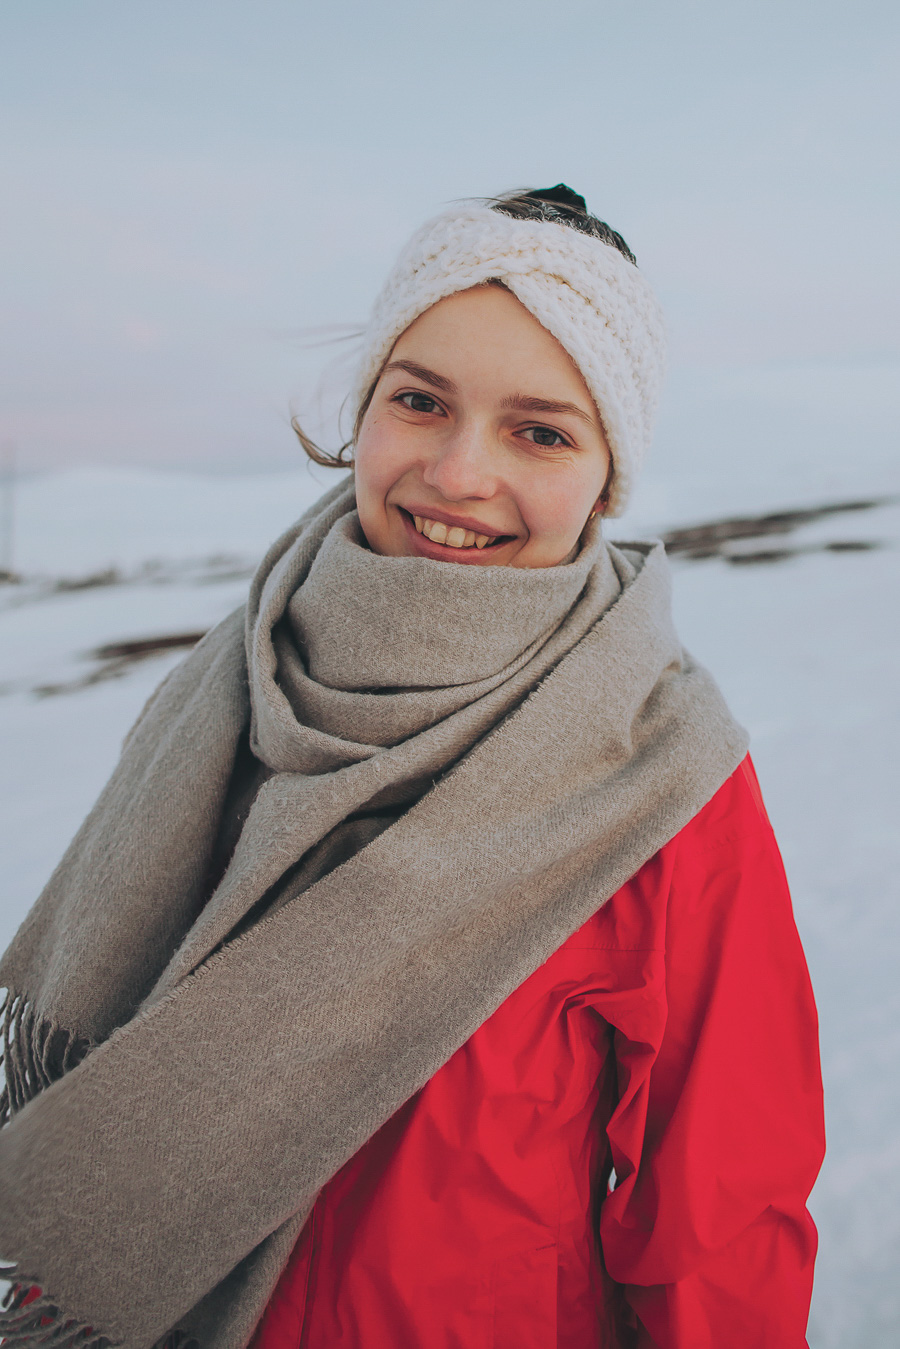 Girl smiling and wearing a red jacket